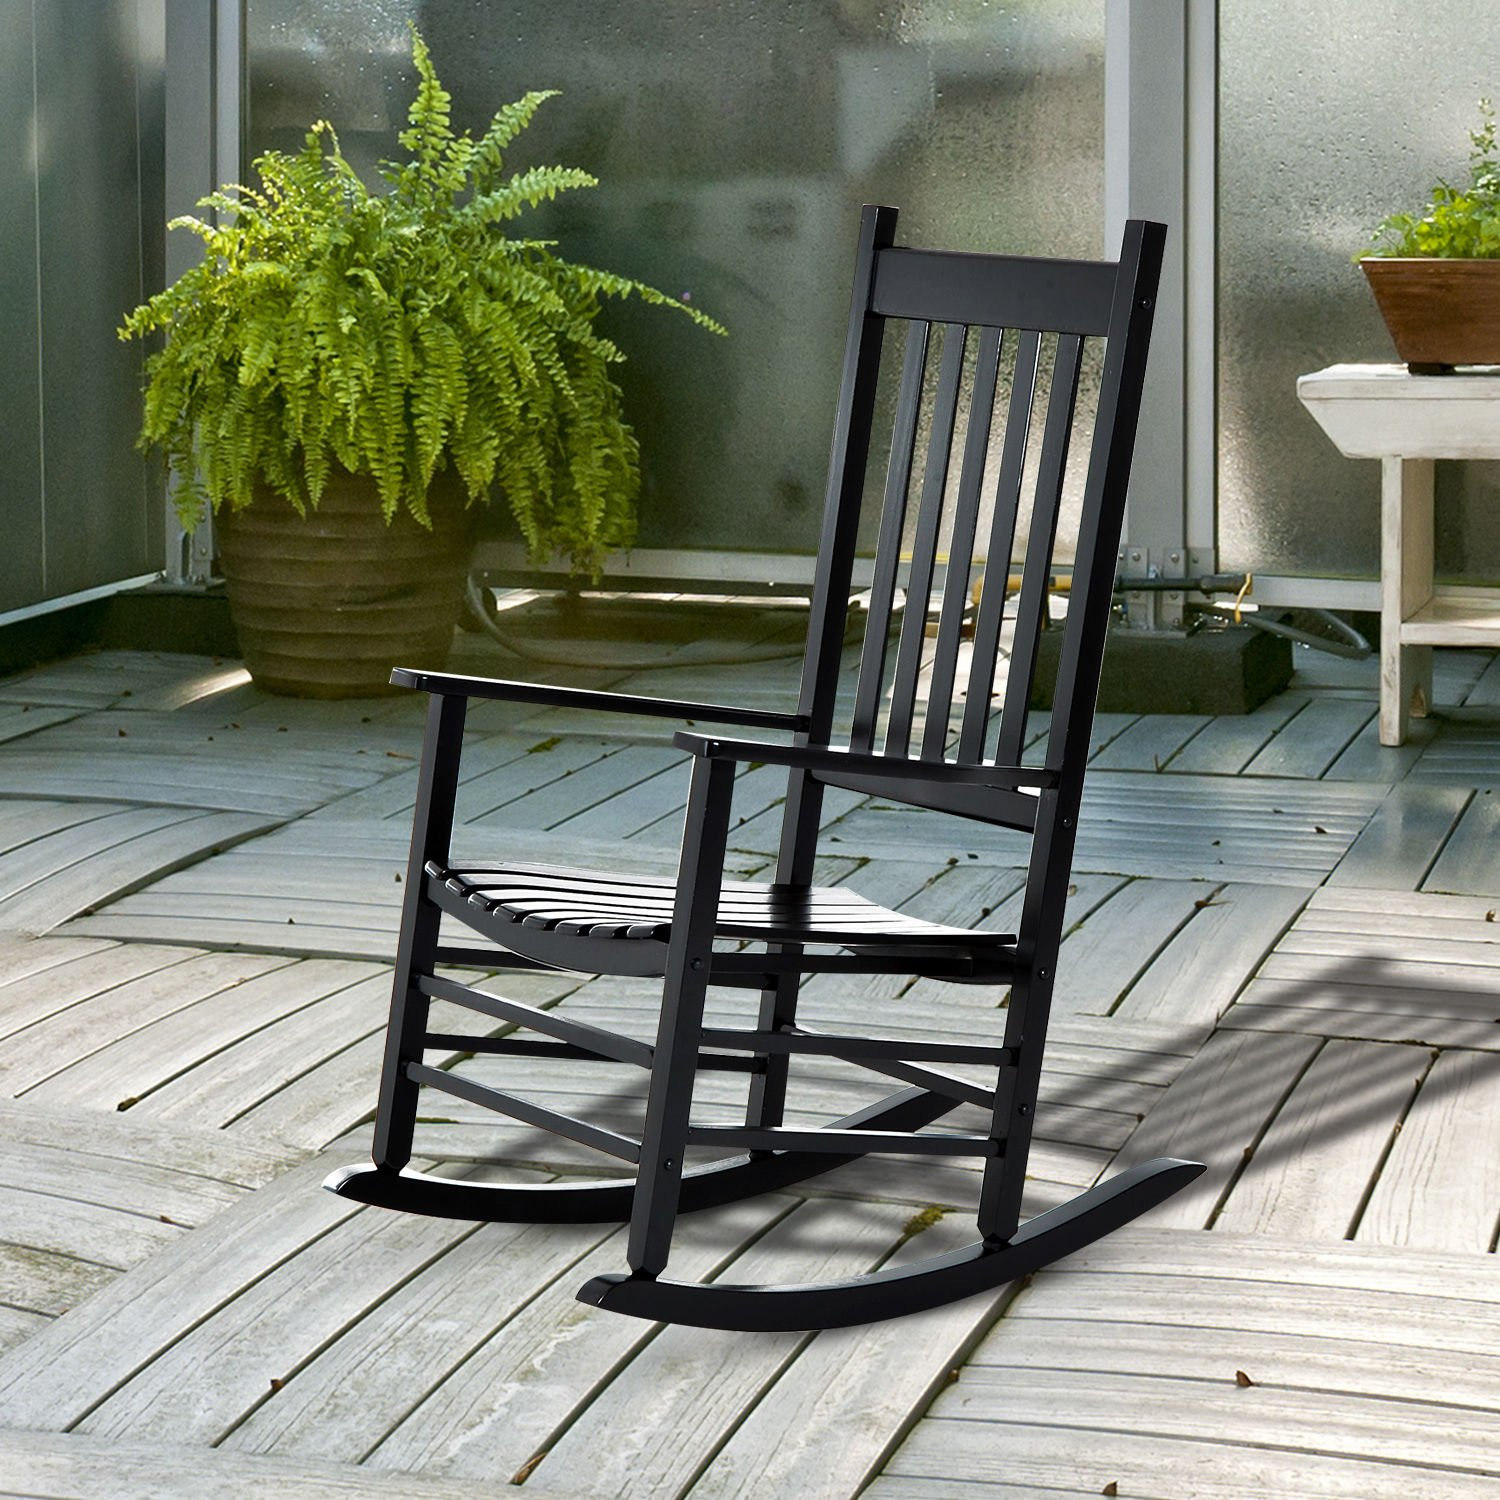 Outsunny Porch Rocking Chair - Outdoor Patio Wooden Rocker - Black by Outsunny (Image #2)